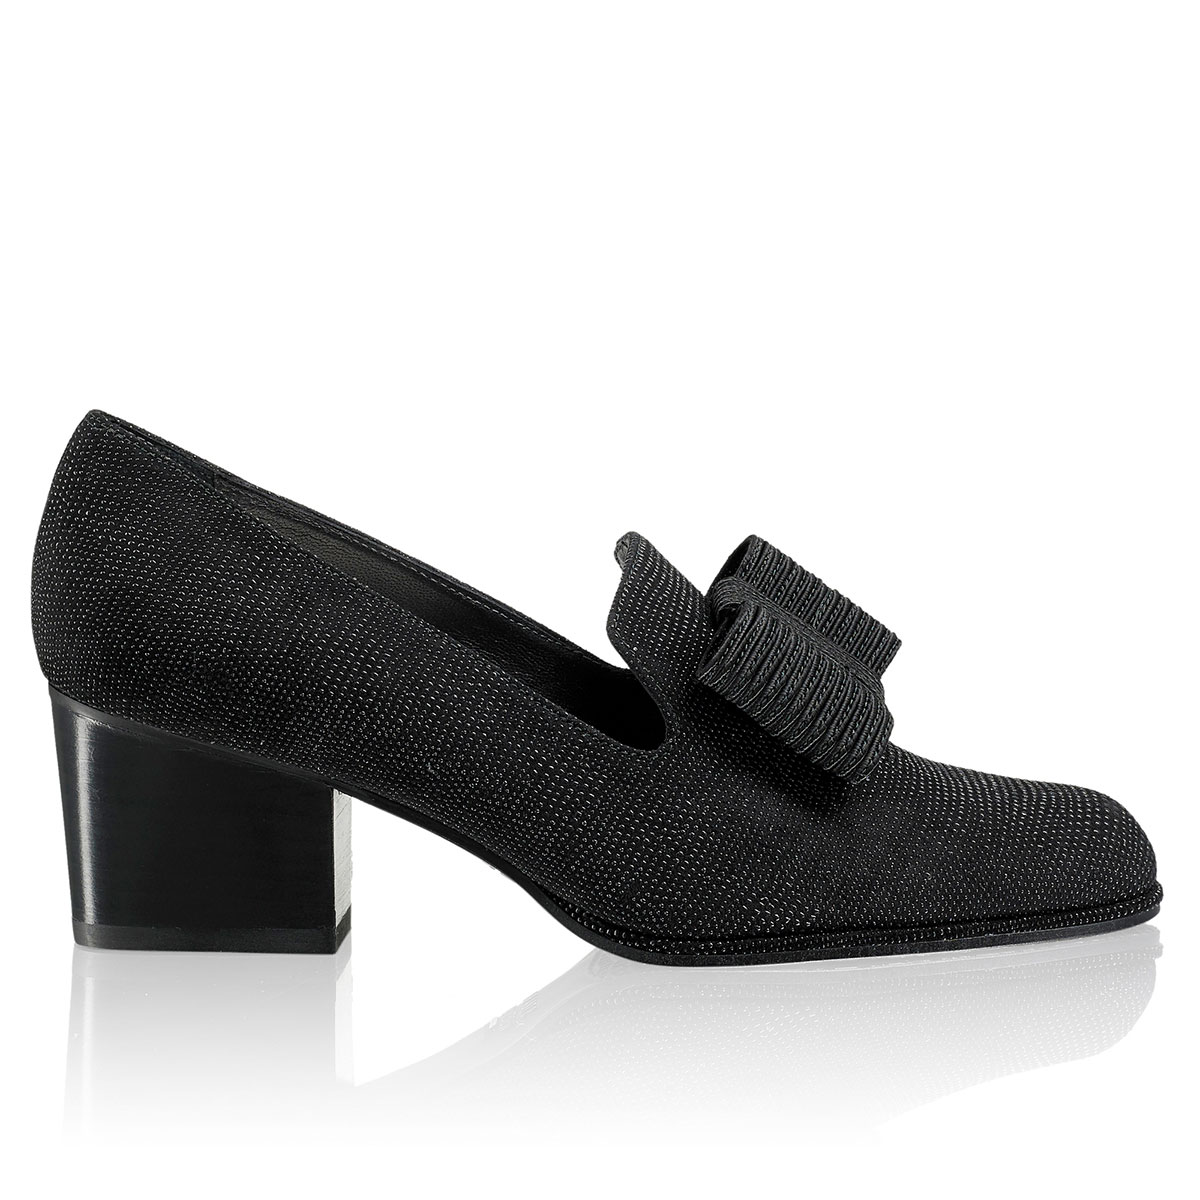 Russell And Bromley ATTA BOW Block Heel Bow Court